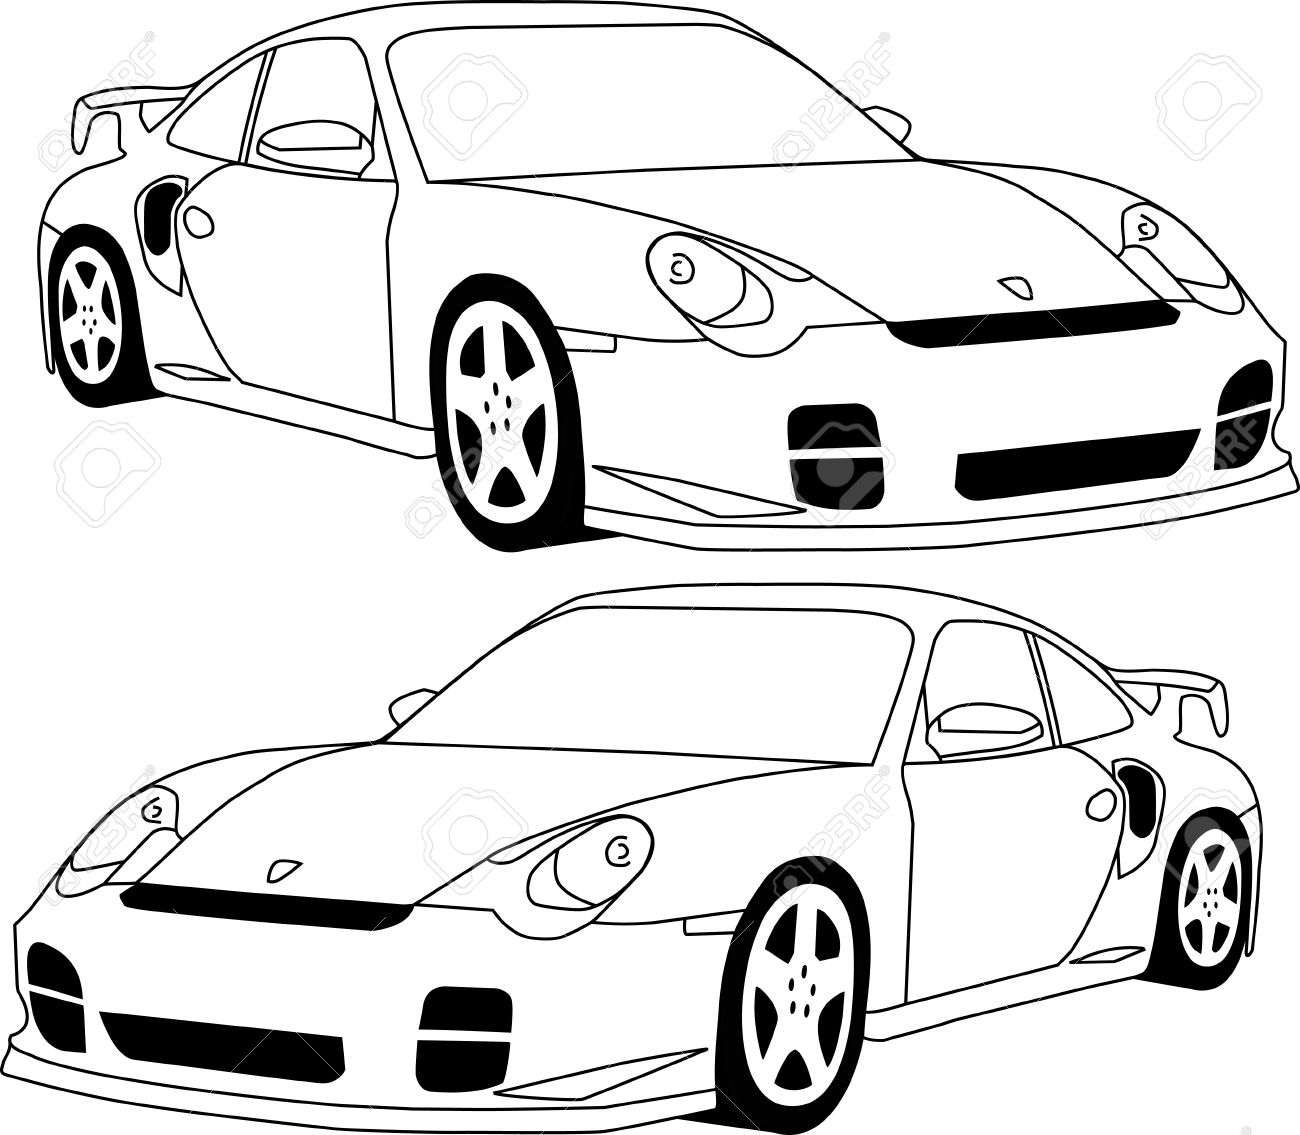 1300x1135 911 Porsche Royalty Free Cliparts, Vectors, And Stock Illustration